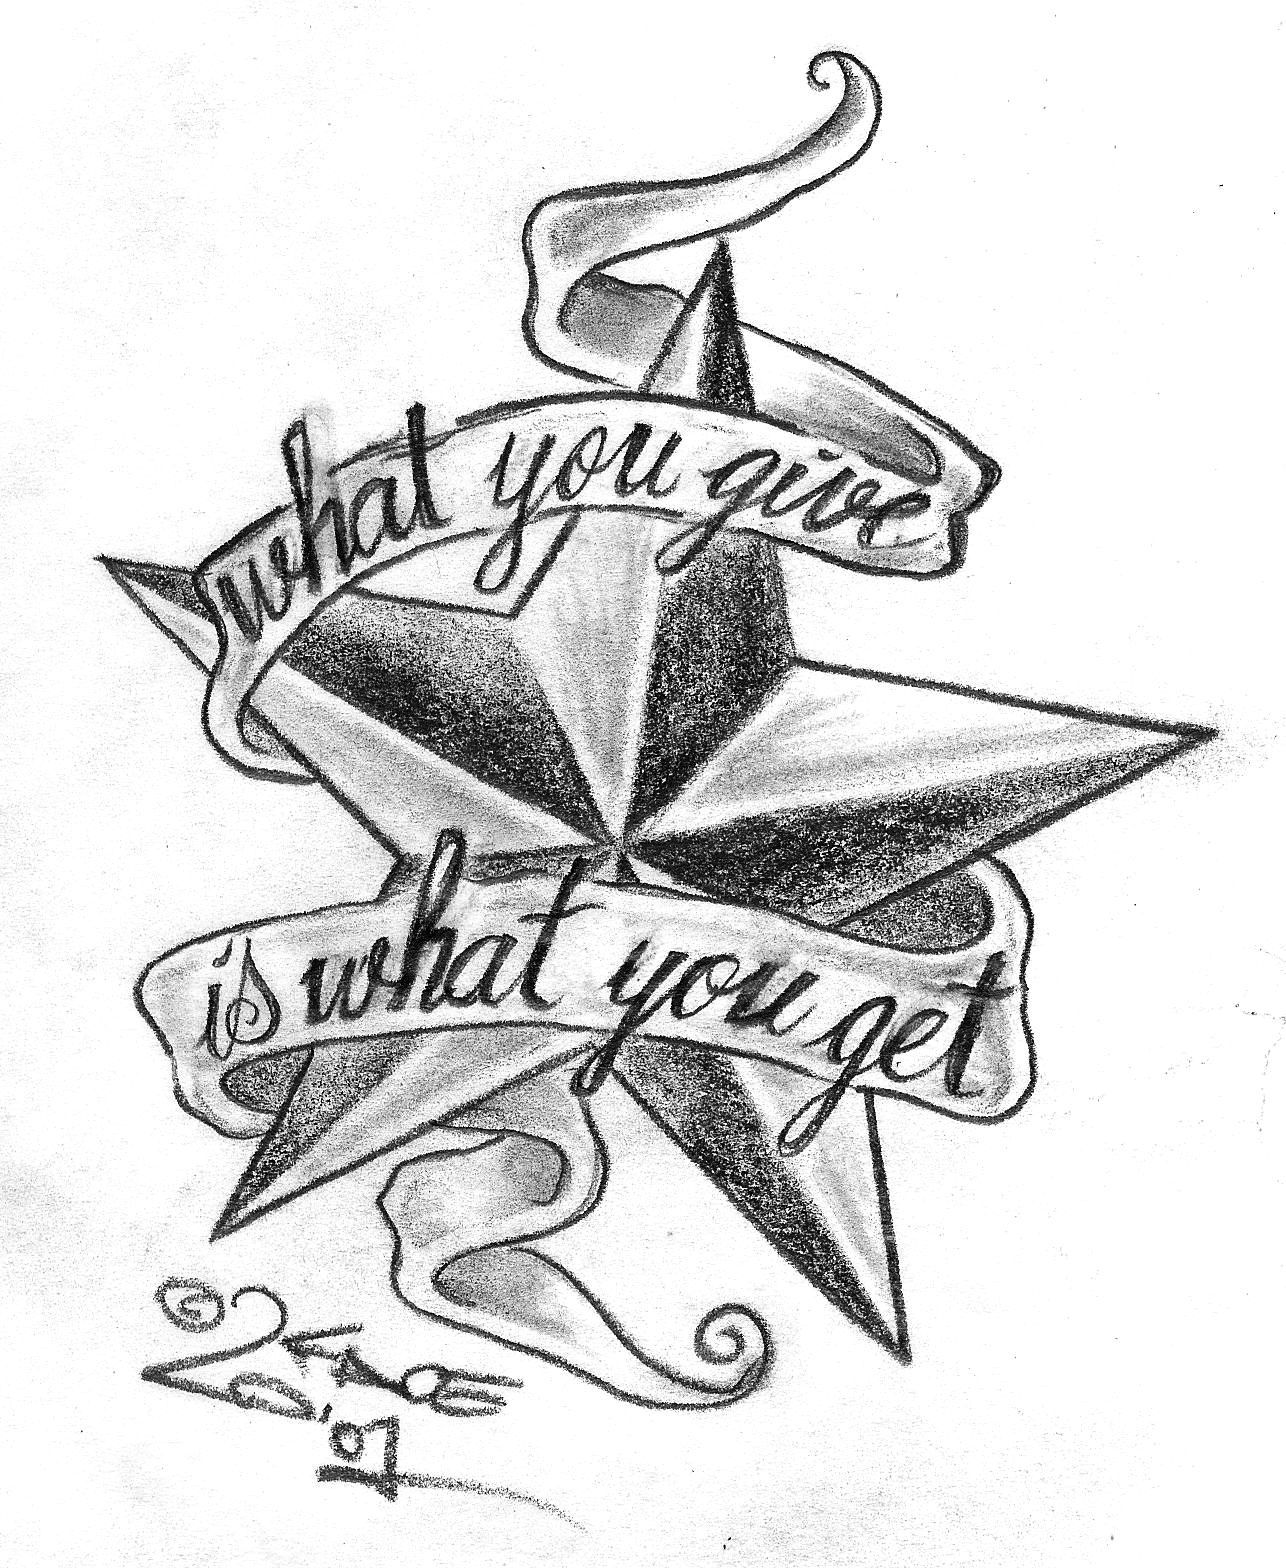 Star Printable Tattoo Design Http Heledis Com Checking And Browsing The Printable Tattoo Design Star Tattoos Star Tattoo Designs Nautical Star Tattoos